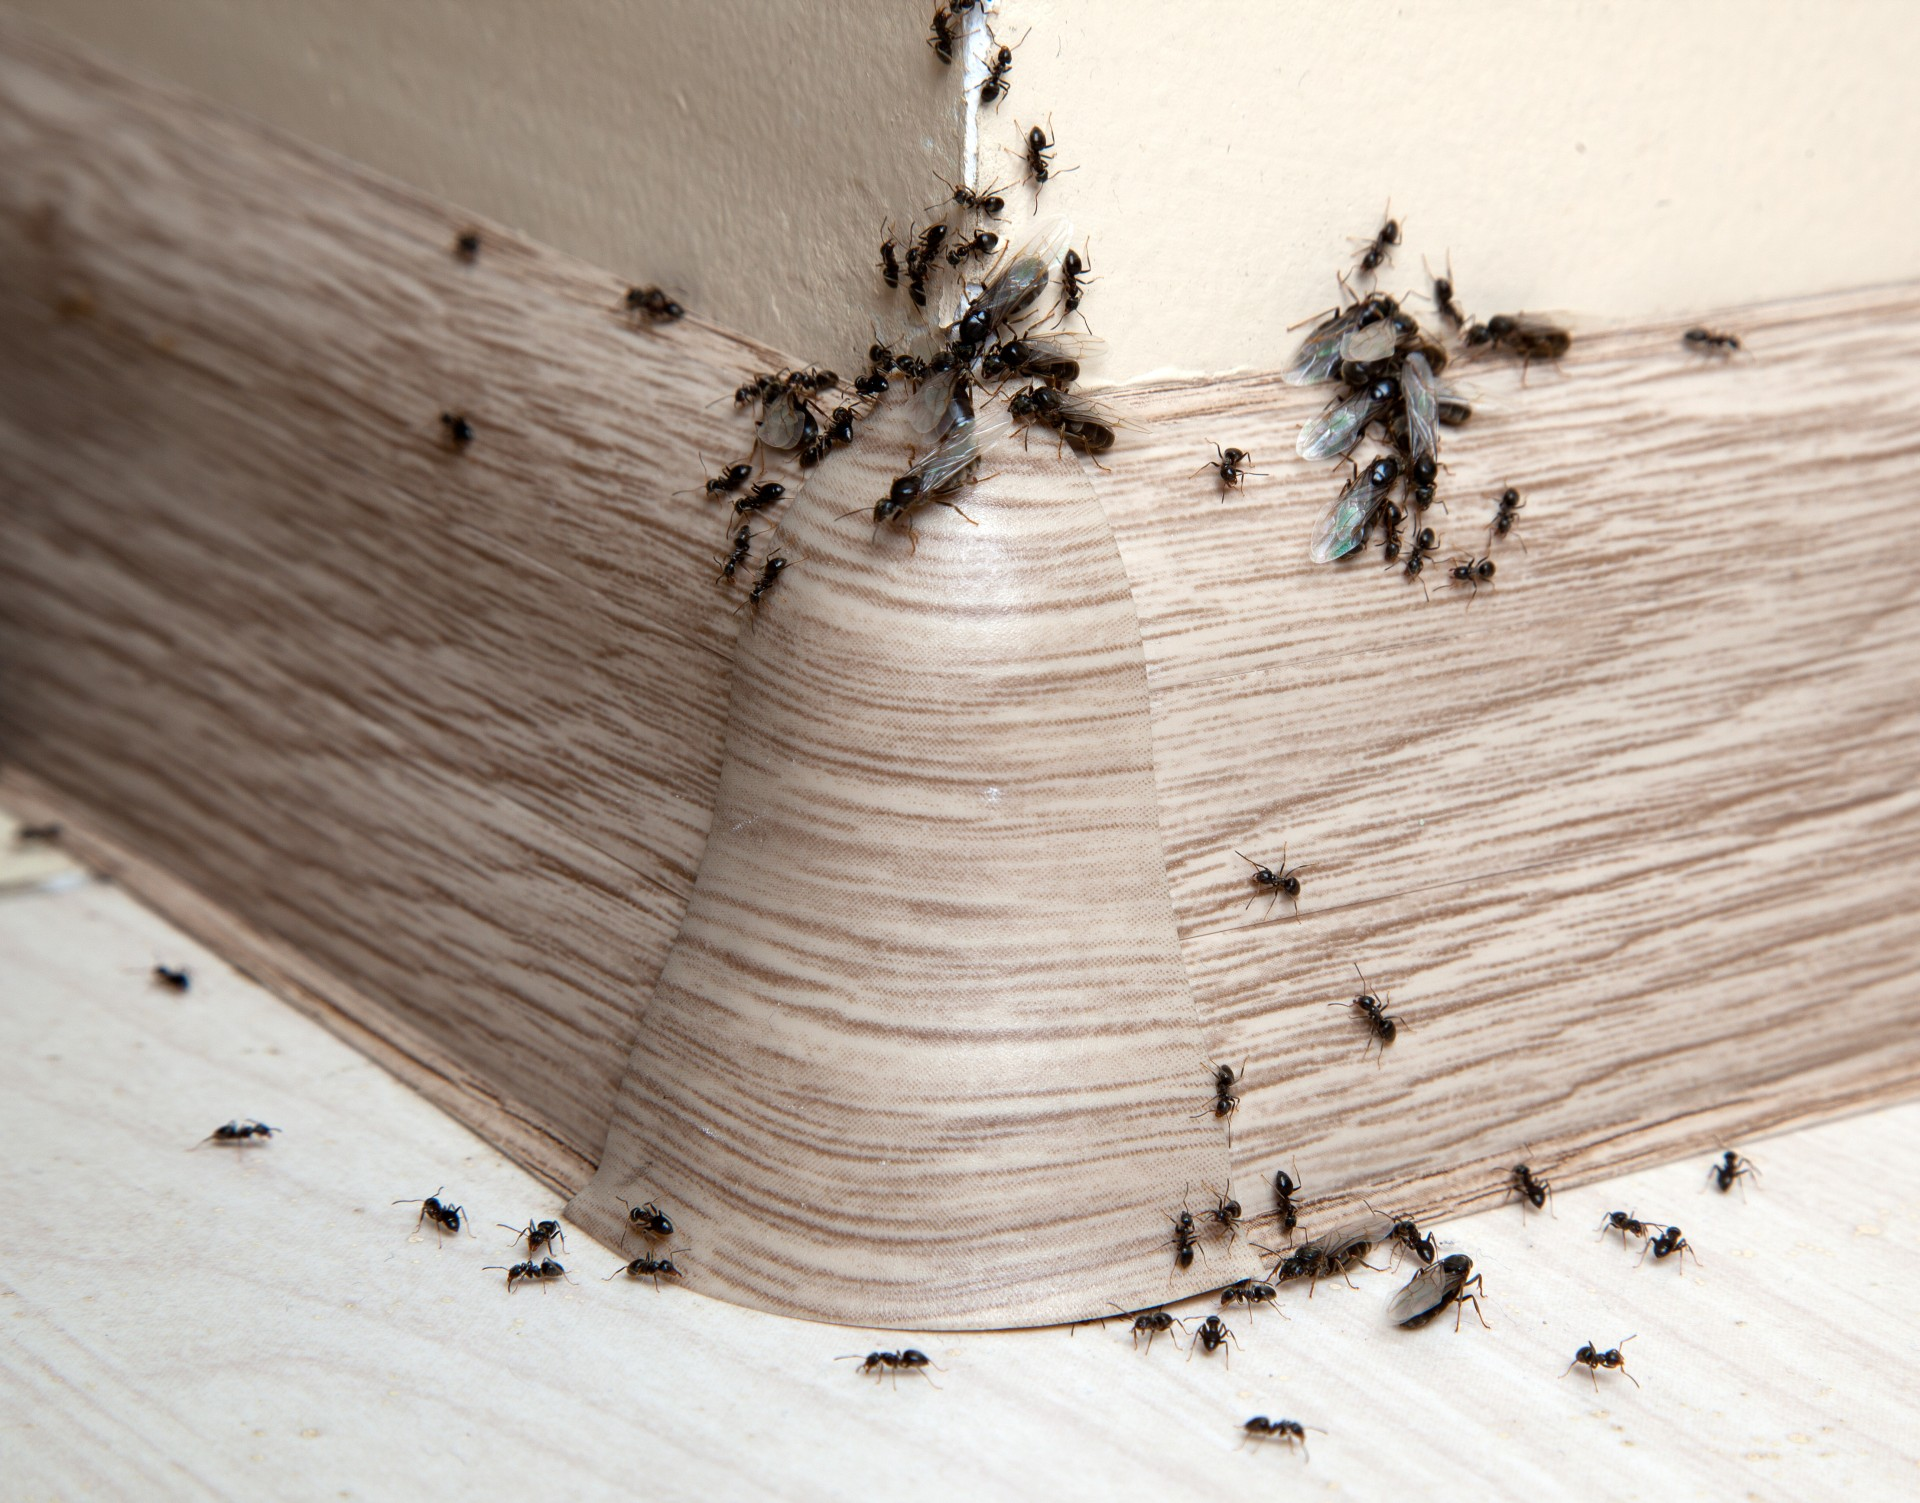 Ant Infestation, Pest Control in Harlesden, Willesden, NW10. Call Now 020 8166 9746